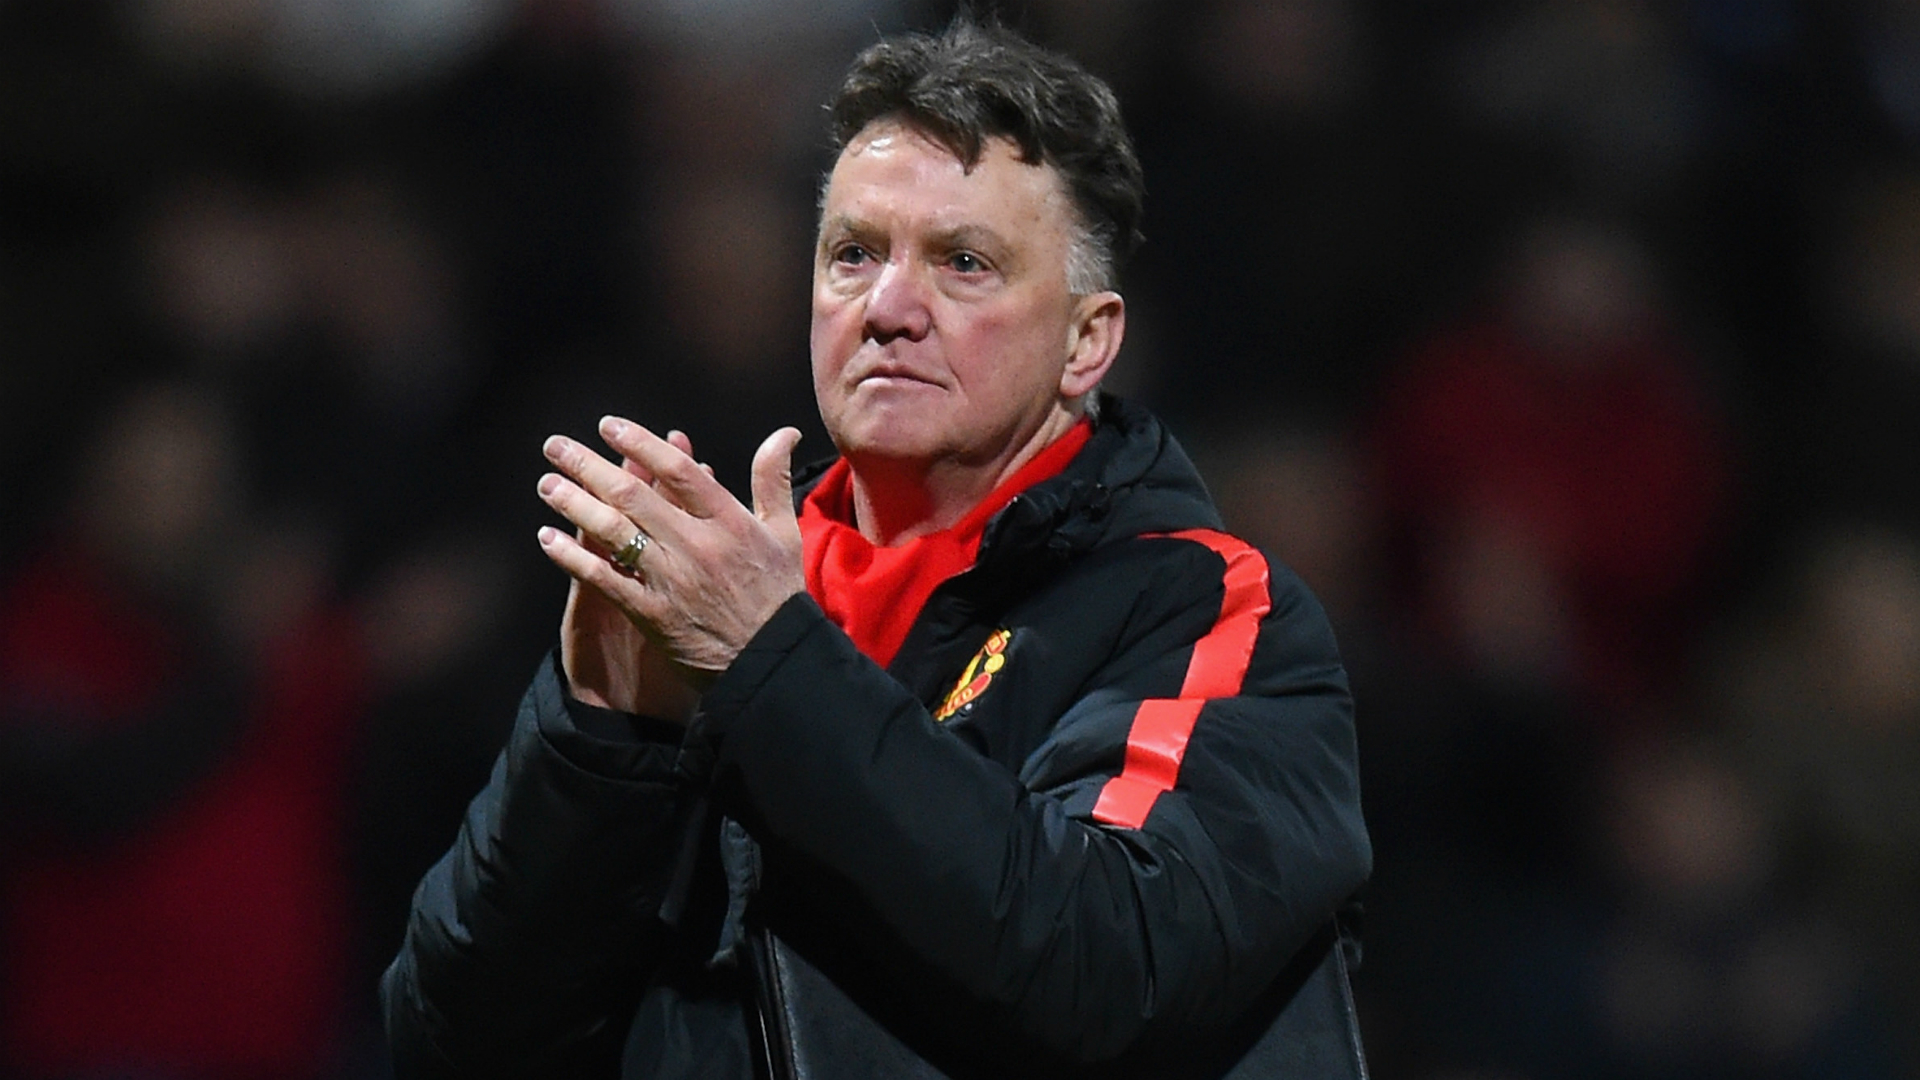 Van Gaal: United Fans Are The Best I've Dealt With